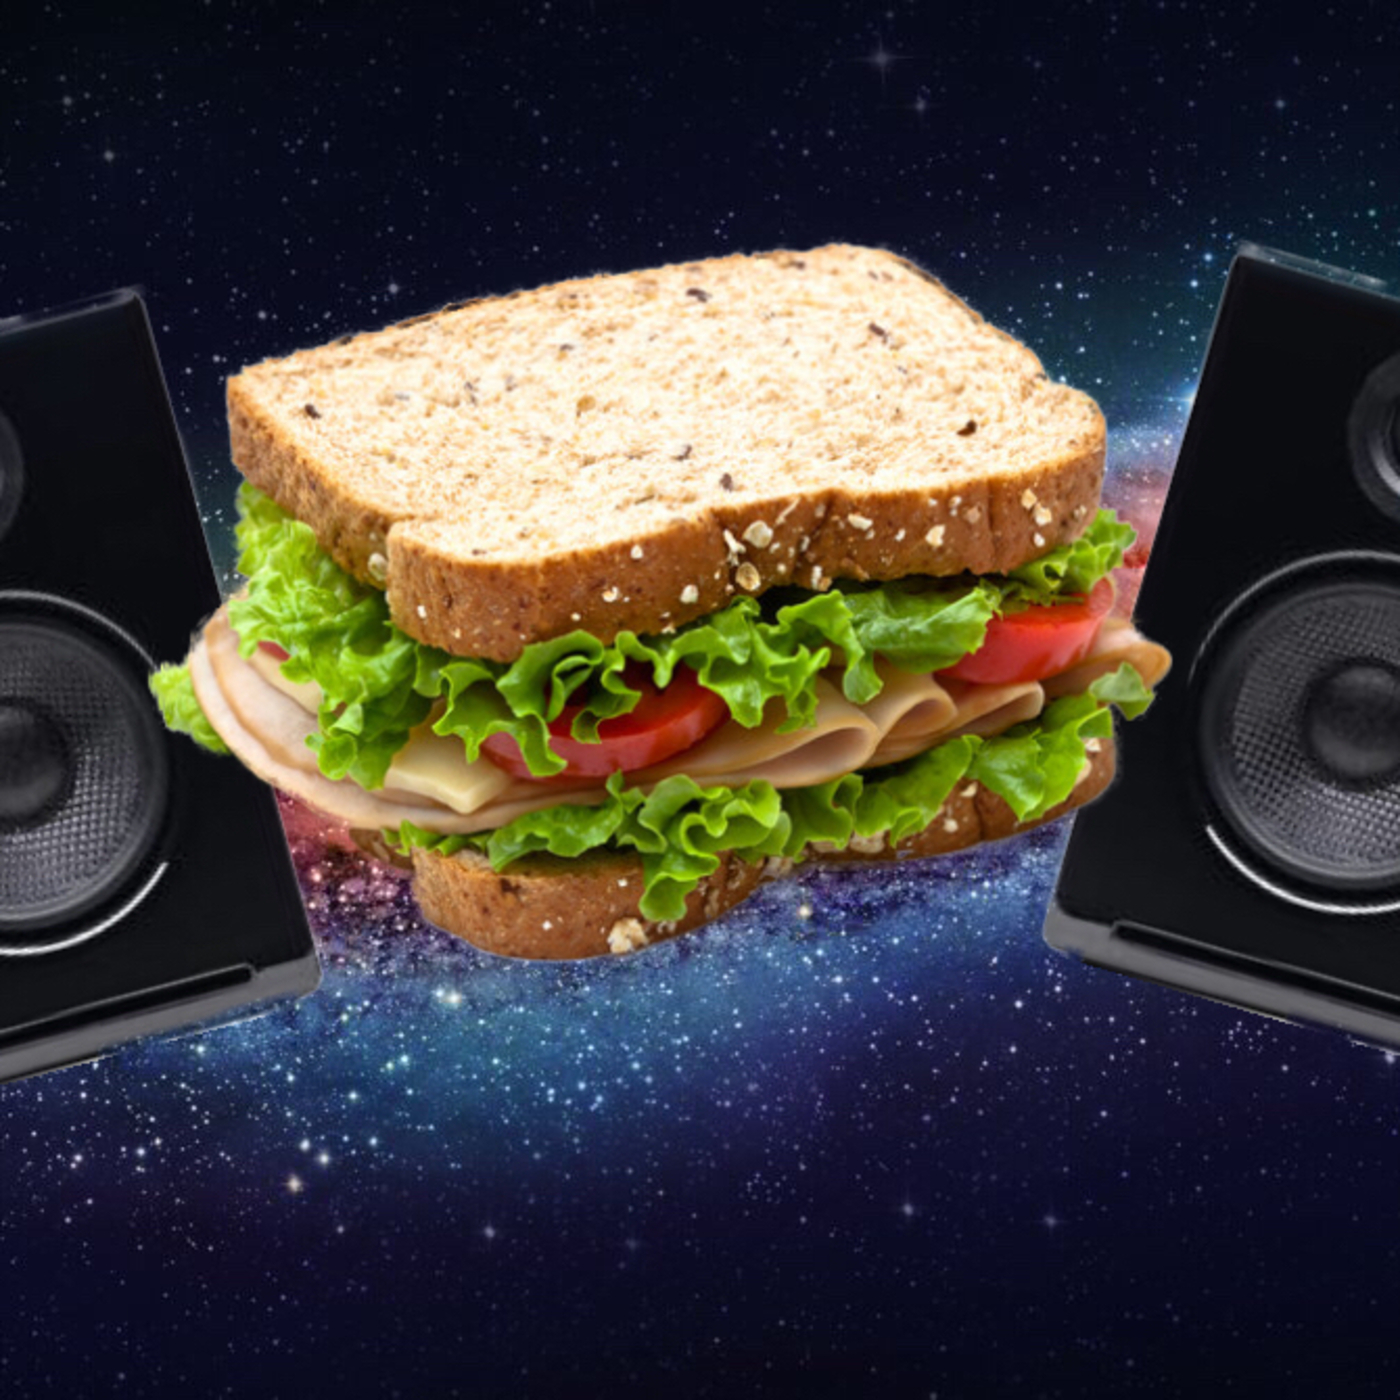 Podcast in a sandwich